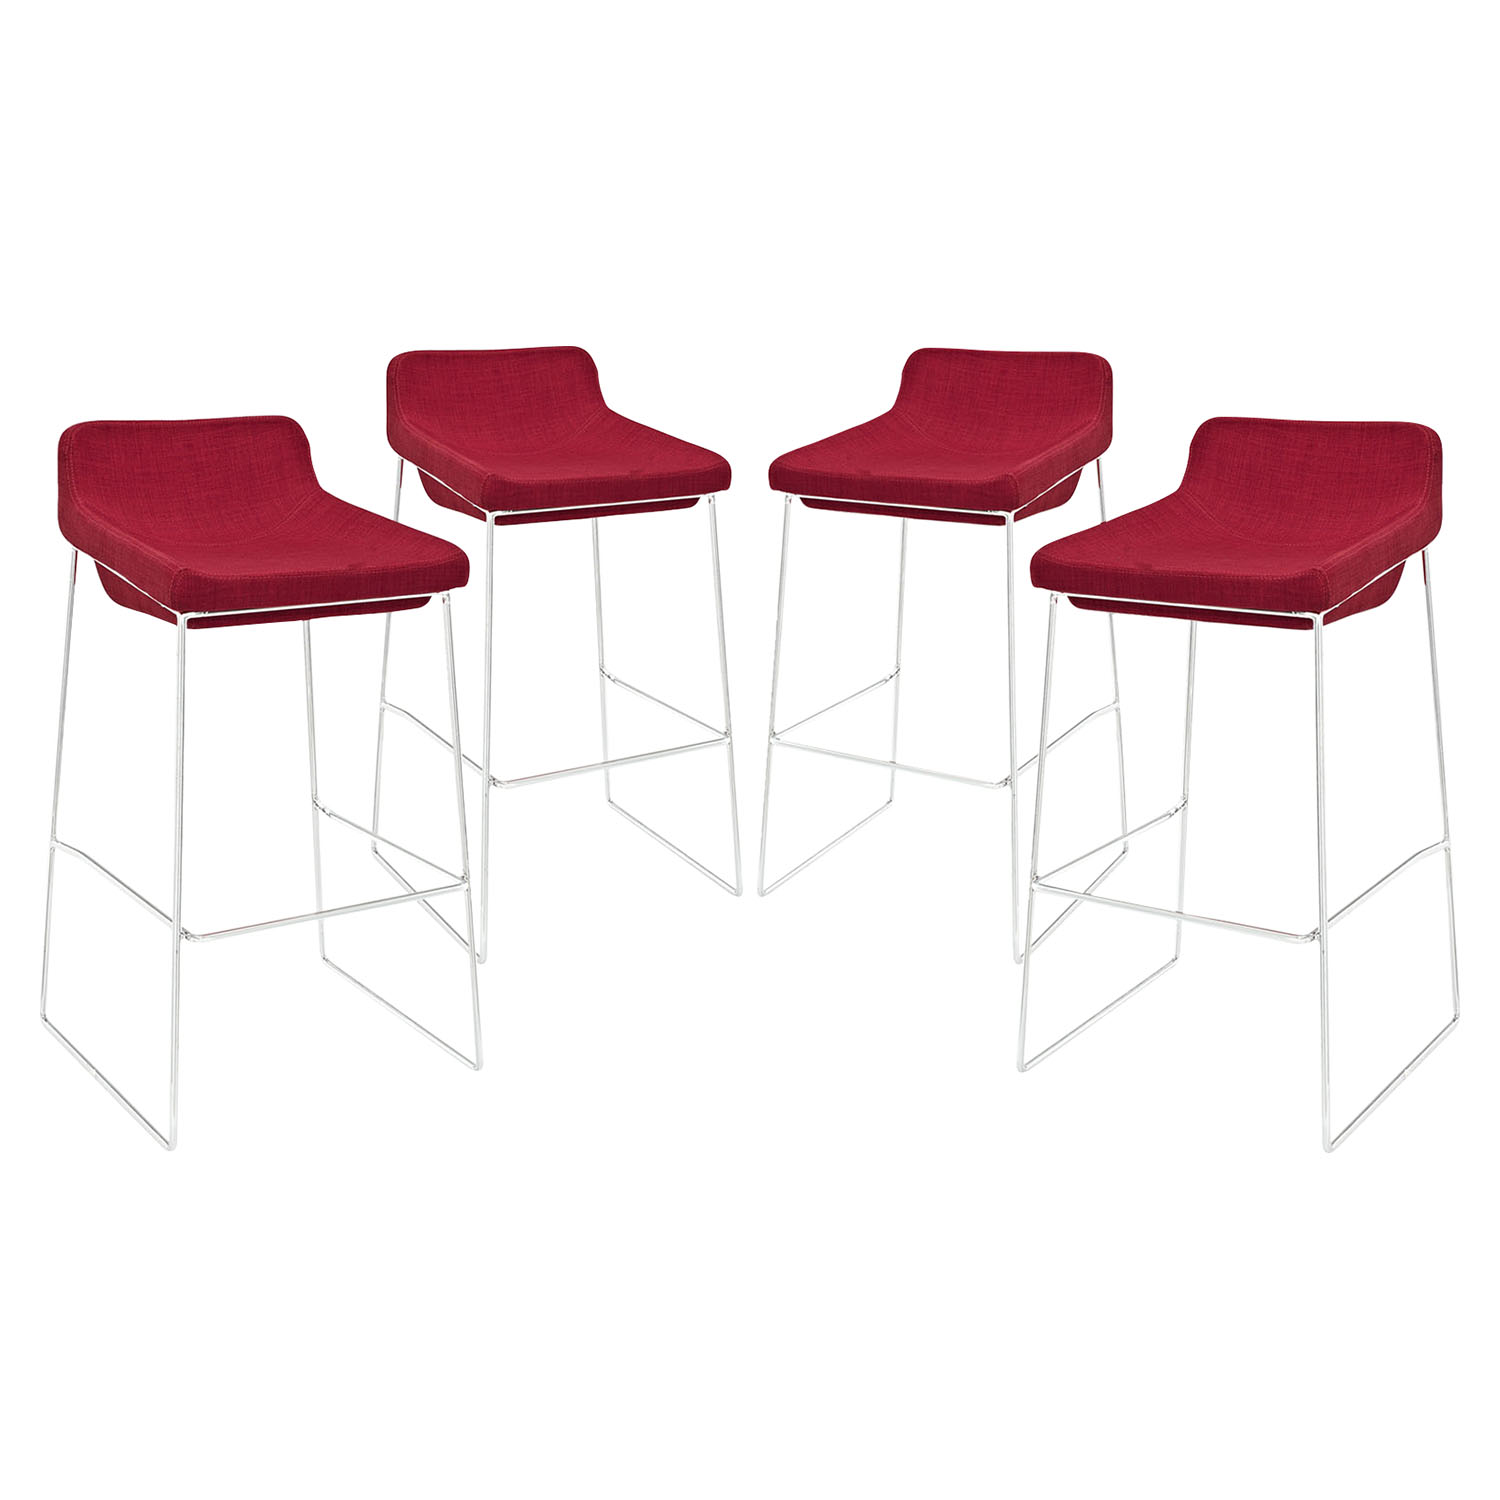 Garner Bar Stool - Metal Legs, Red (Set of 4)